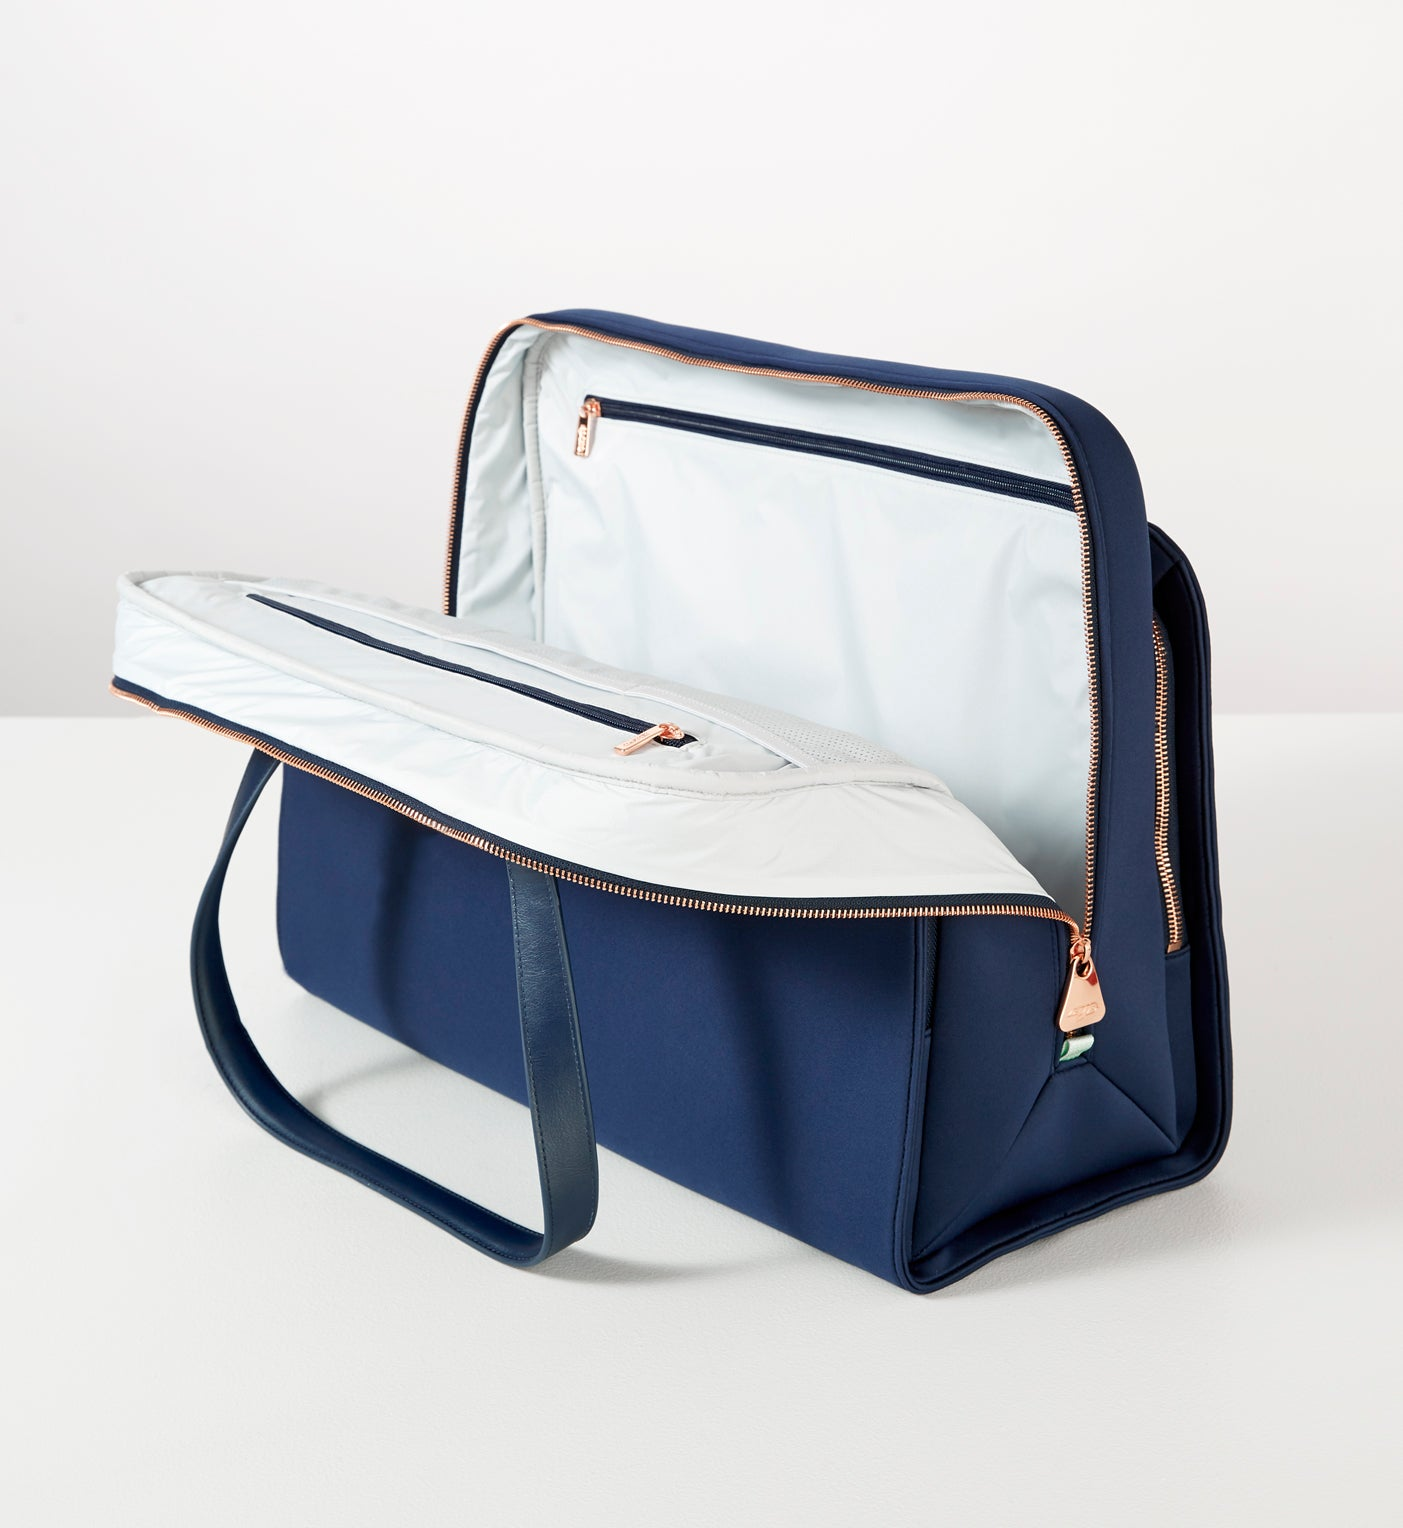 Sparro Designs Carry-All with work and gym bag functionality